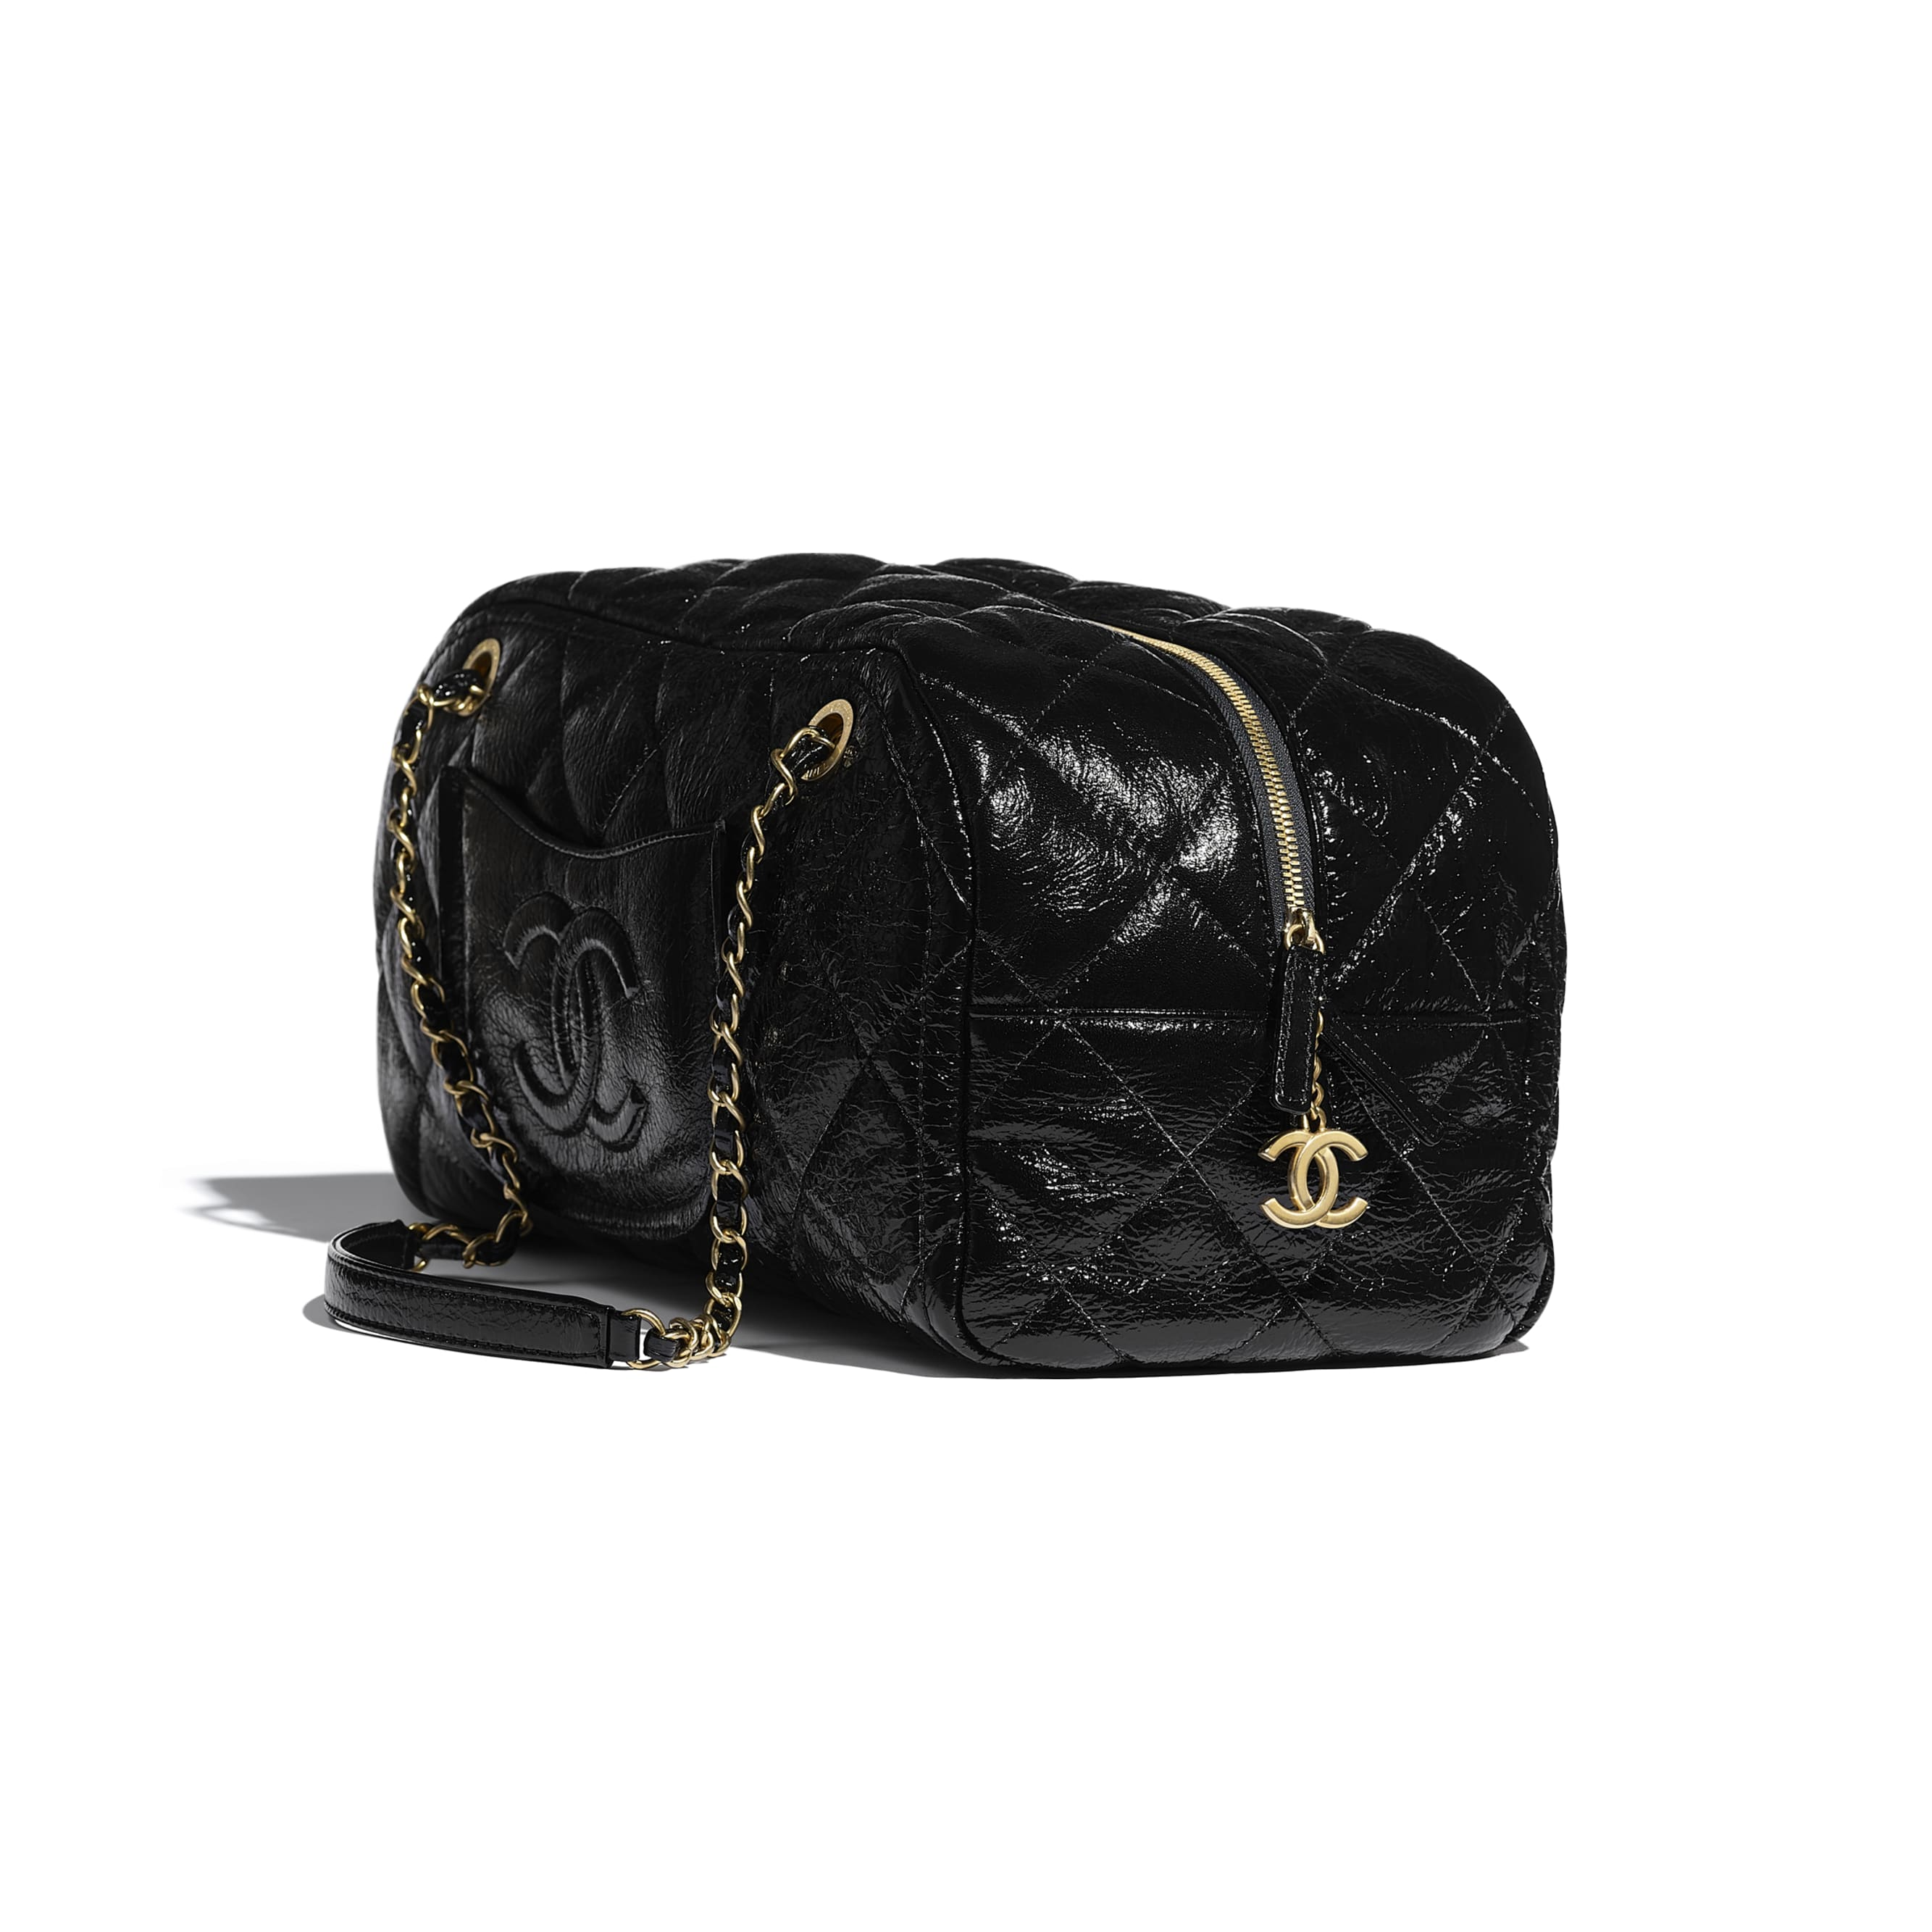 Large Bowling Bag - Black - Shiny Crumpled Calfskin & Gold-Tone Metal - CHANEL - Default view - see standard sized version